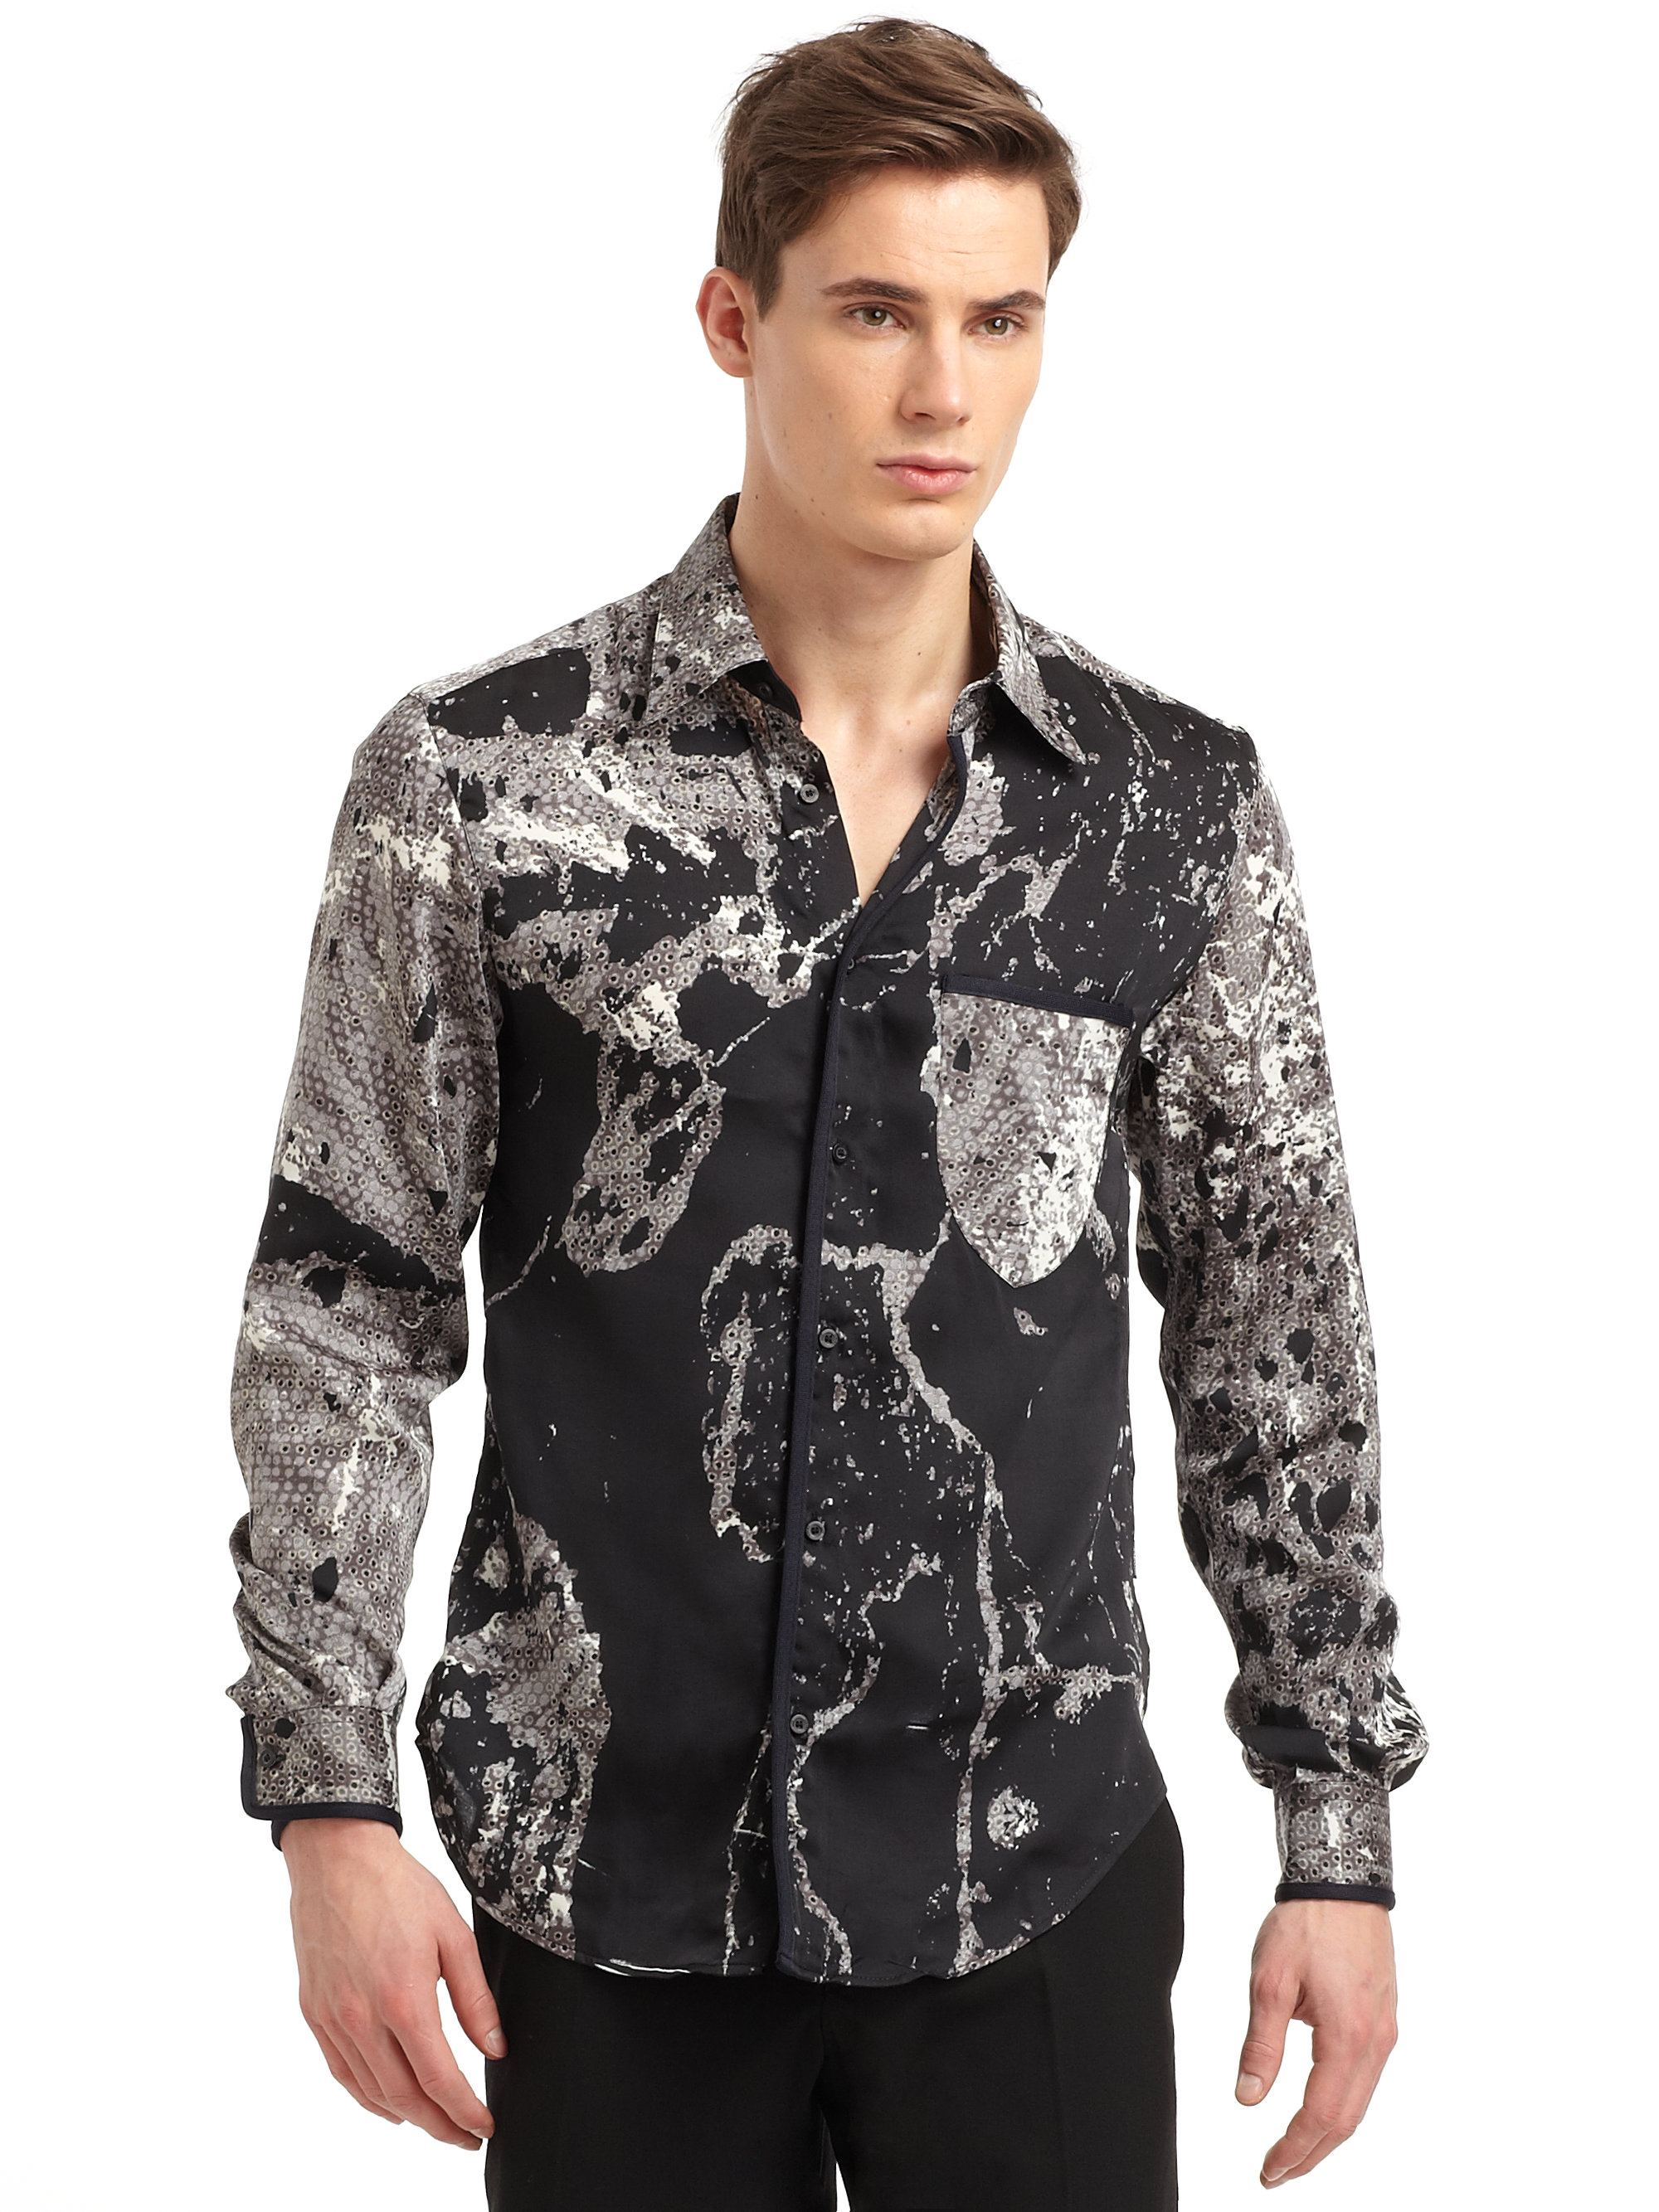 896a61a1 Roberto Cavalli Snake Print Sport Shirt in Black for Men - Lyst